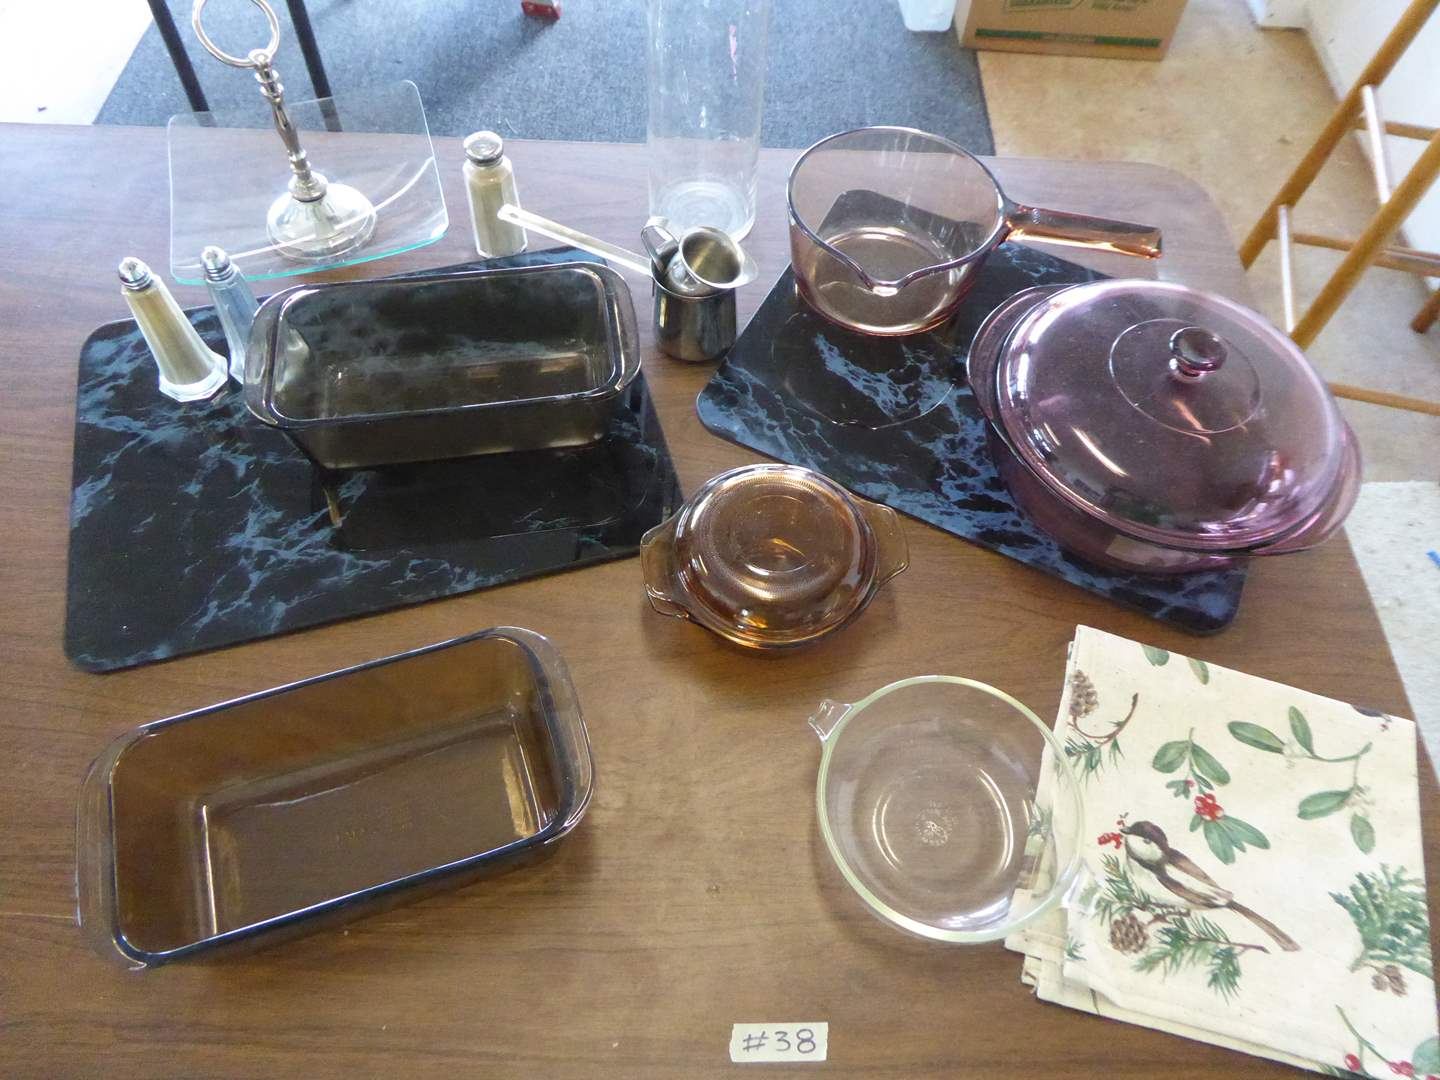 Lot # 38 - Marbled Tempered Glass Cutting Boards, Pyrex & Corning Ware Glass Baking Dishes   (main image)